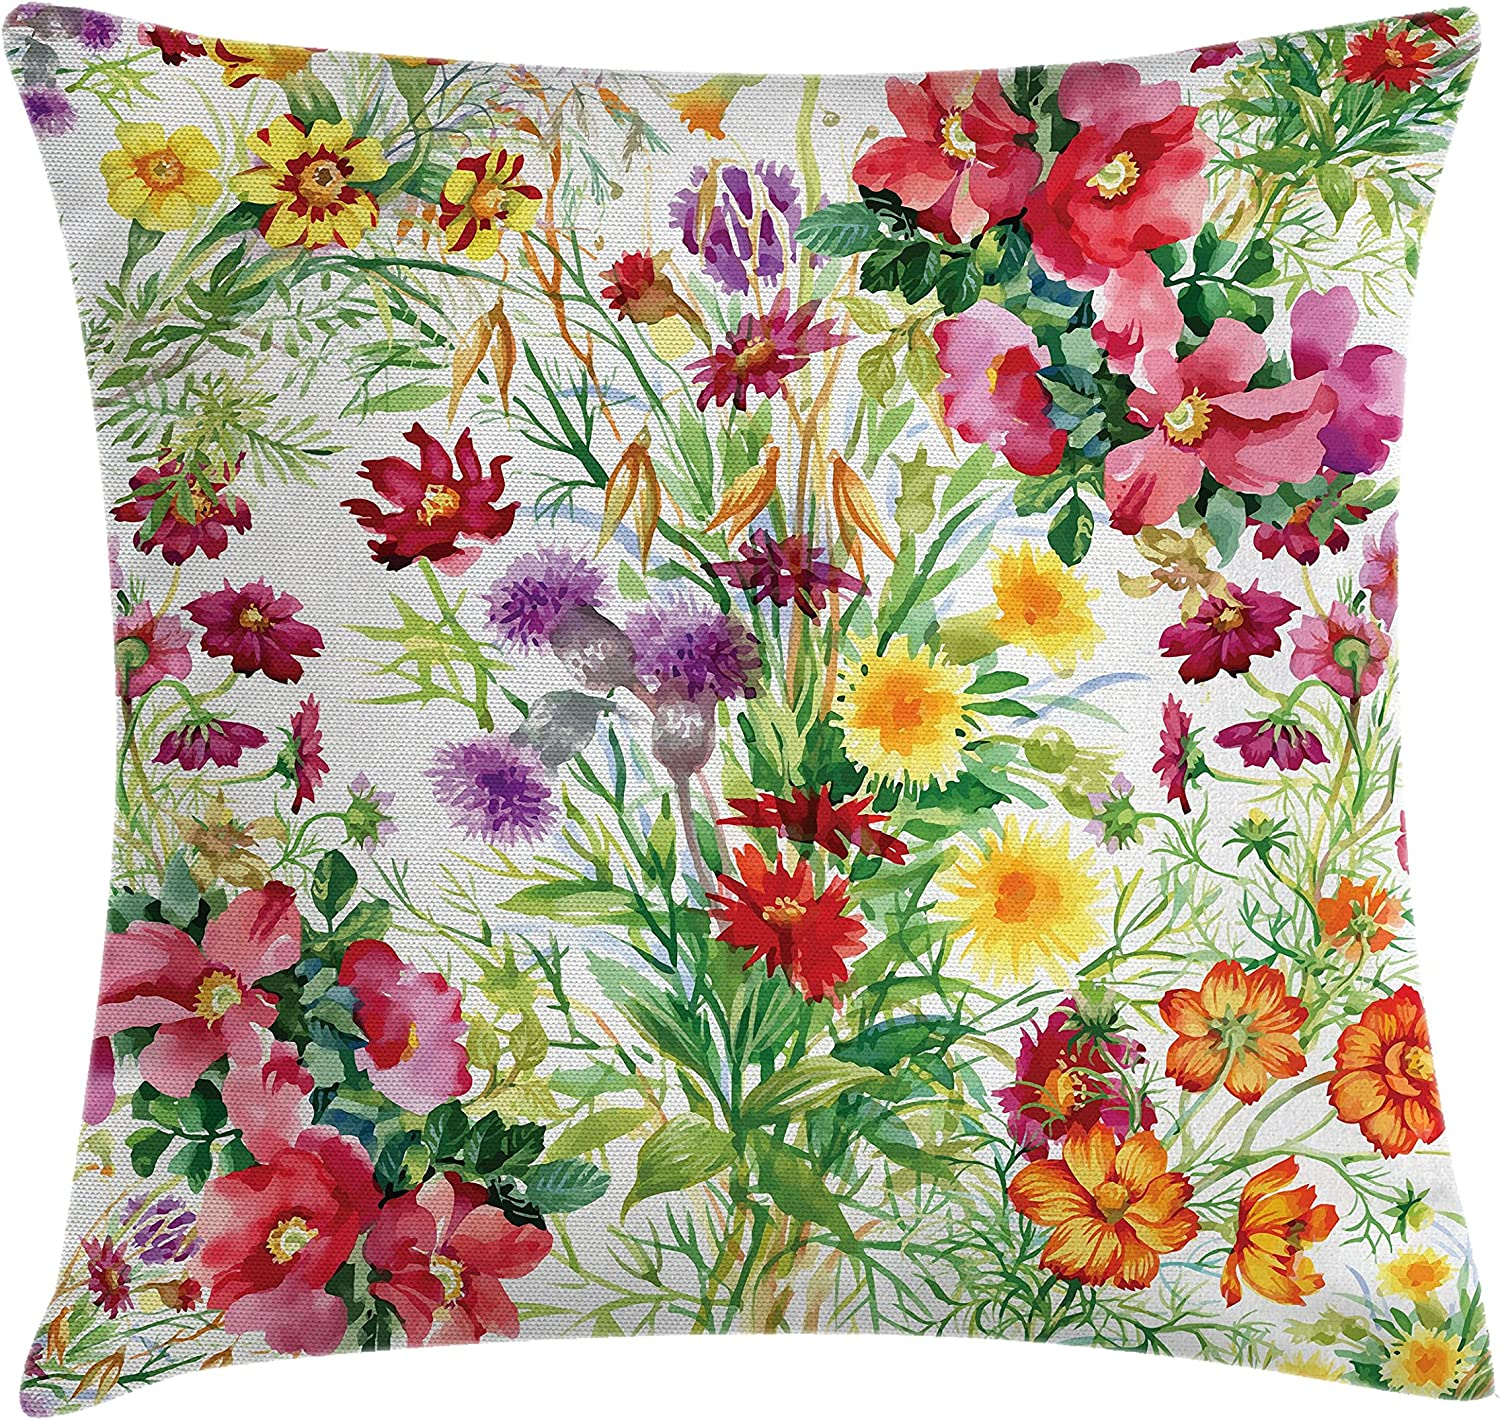 """Ambesonne Flower Throw Pillow Cushion Cover, Floral Design Garden Like Romantic Theme Image with Leaves Rose Blooms Daisies Image, Decorative Square Accent Pillow Case, 20"""" X 20"""", Yellow Pink"""